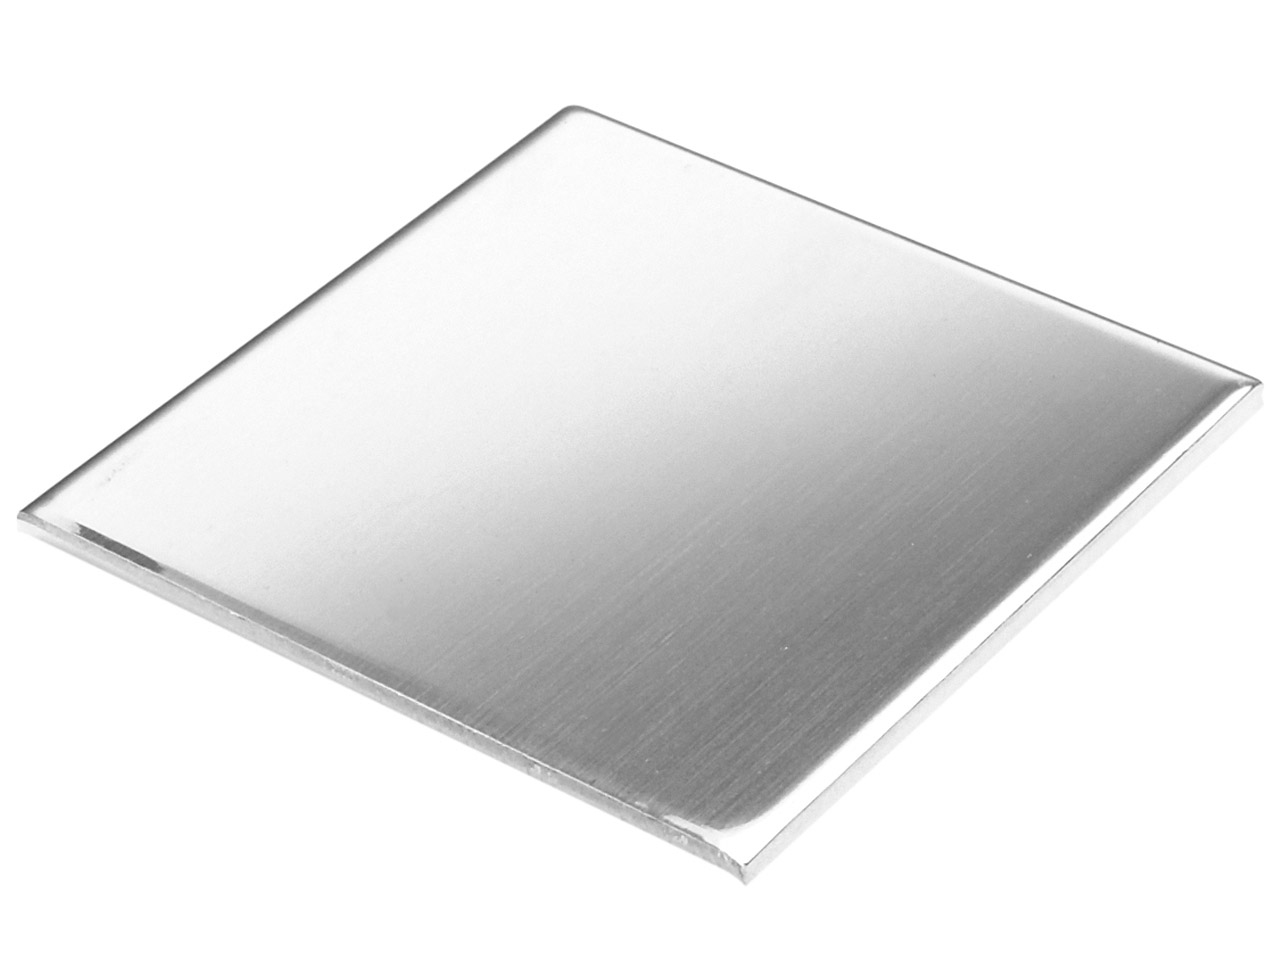 Aluminium Sheet 75x75x0.9mm